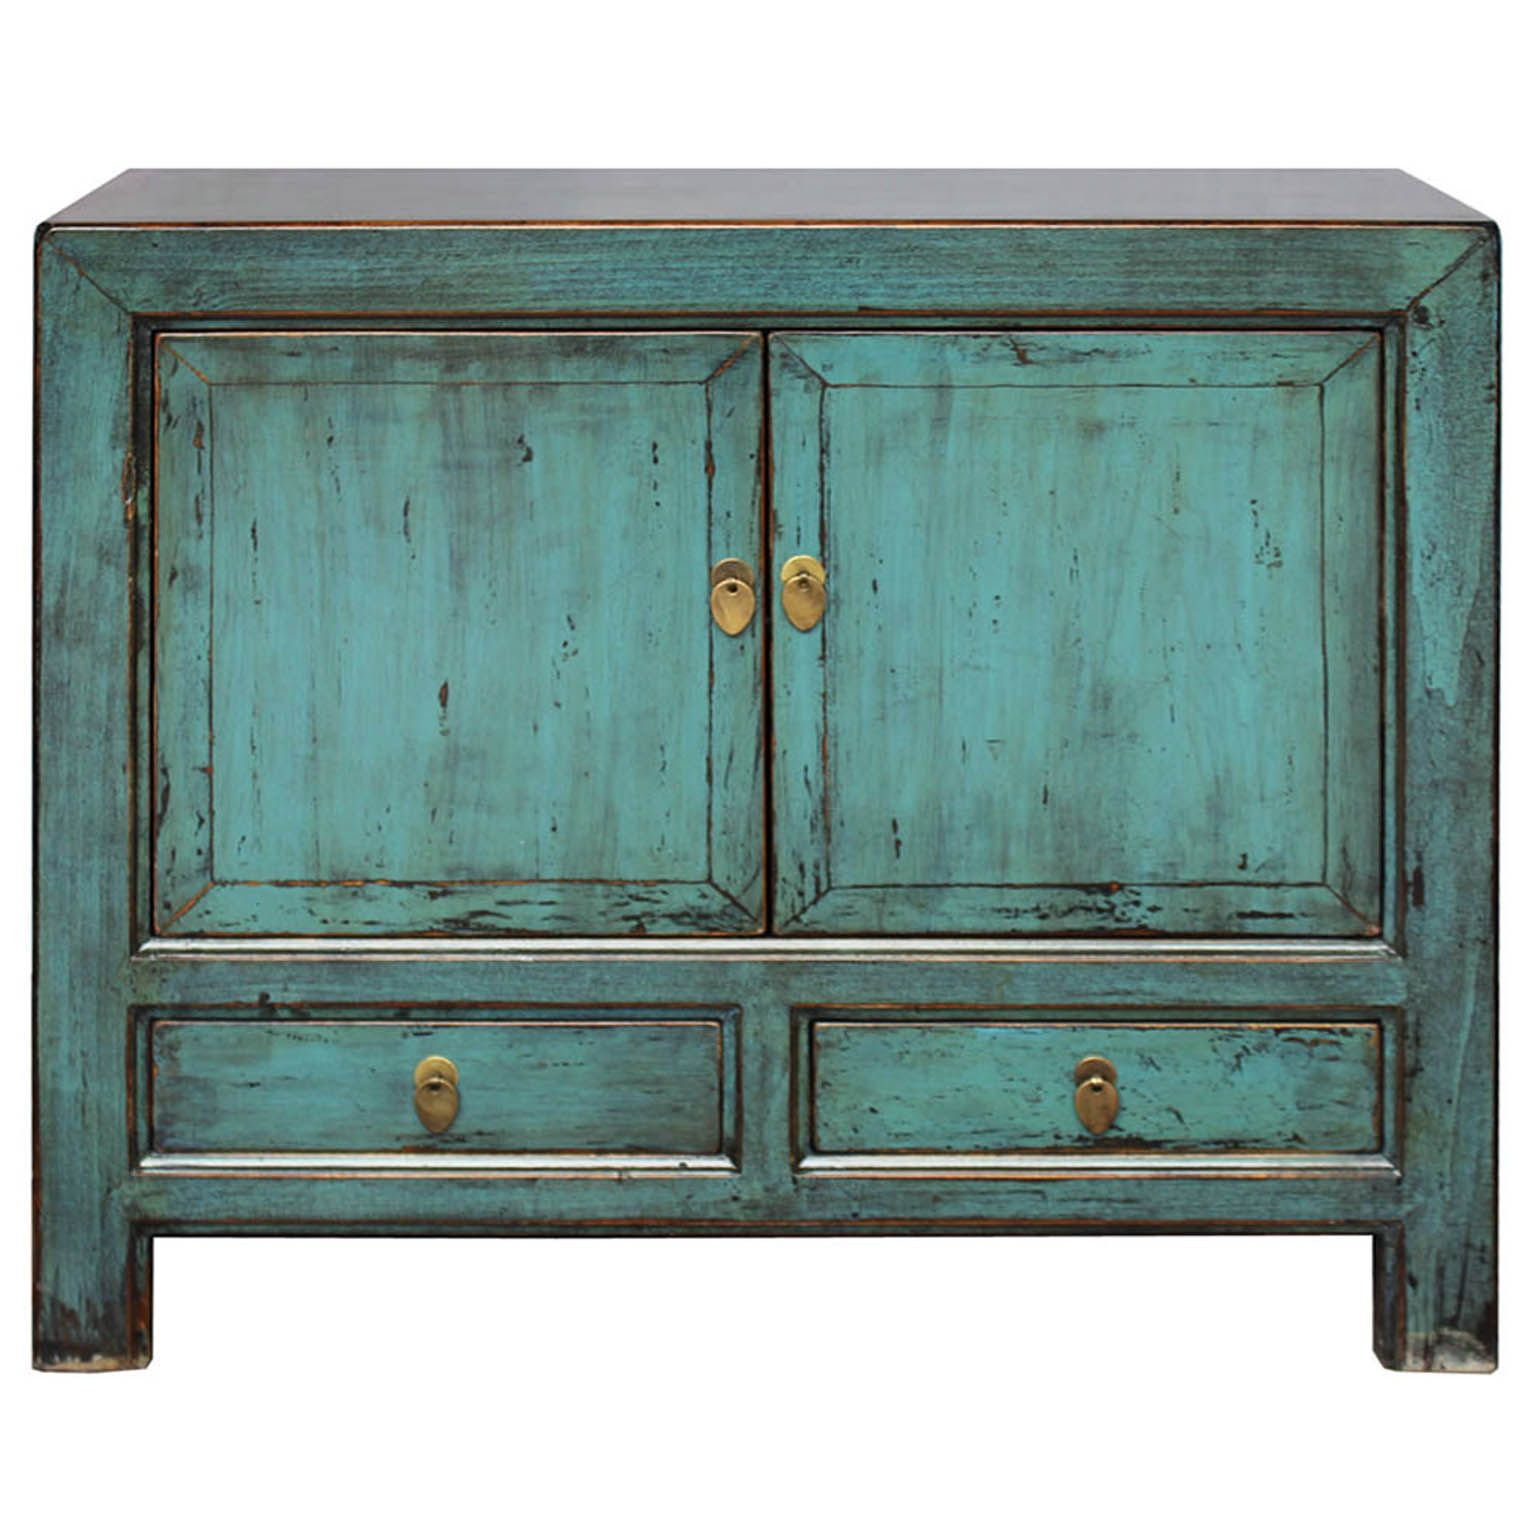 Jewel Toned Two Drawer Blue Green Lacquer Sideboard With Exposed Wood